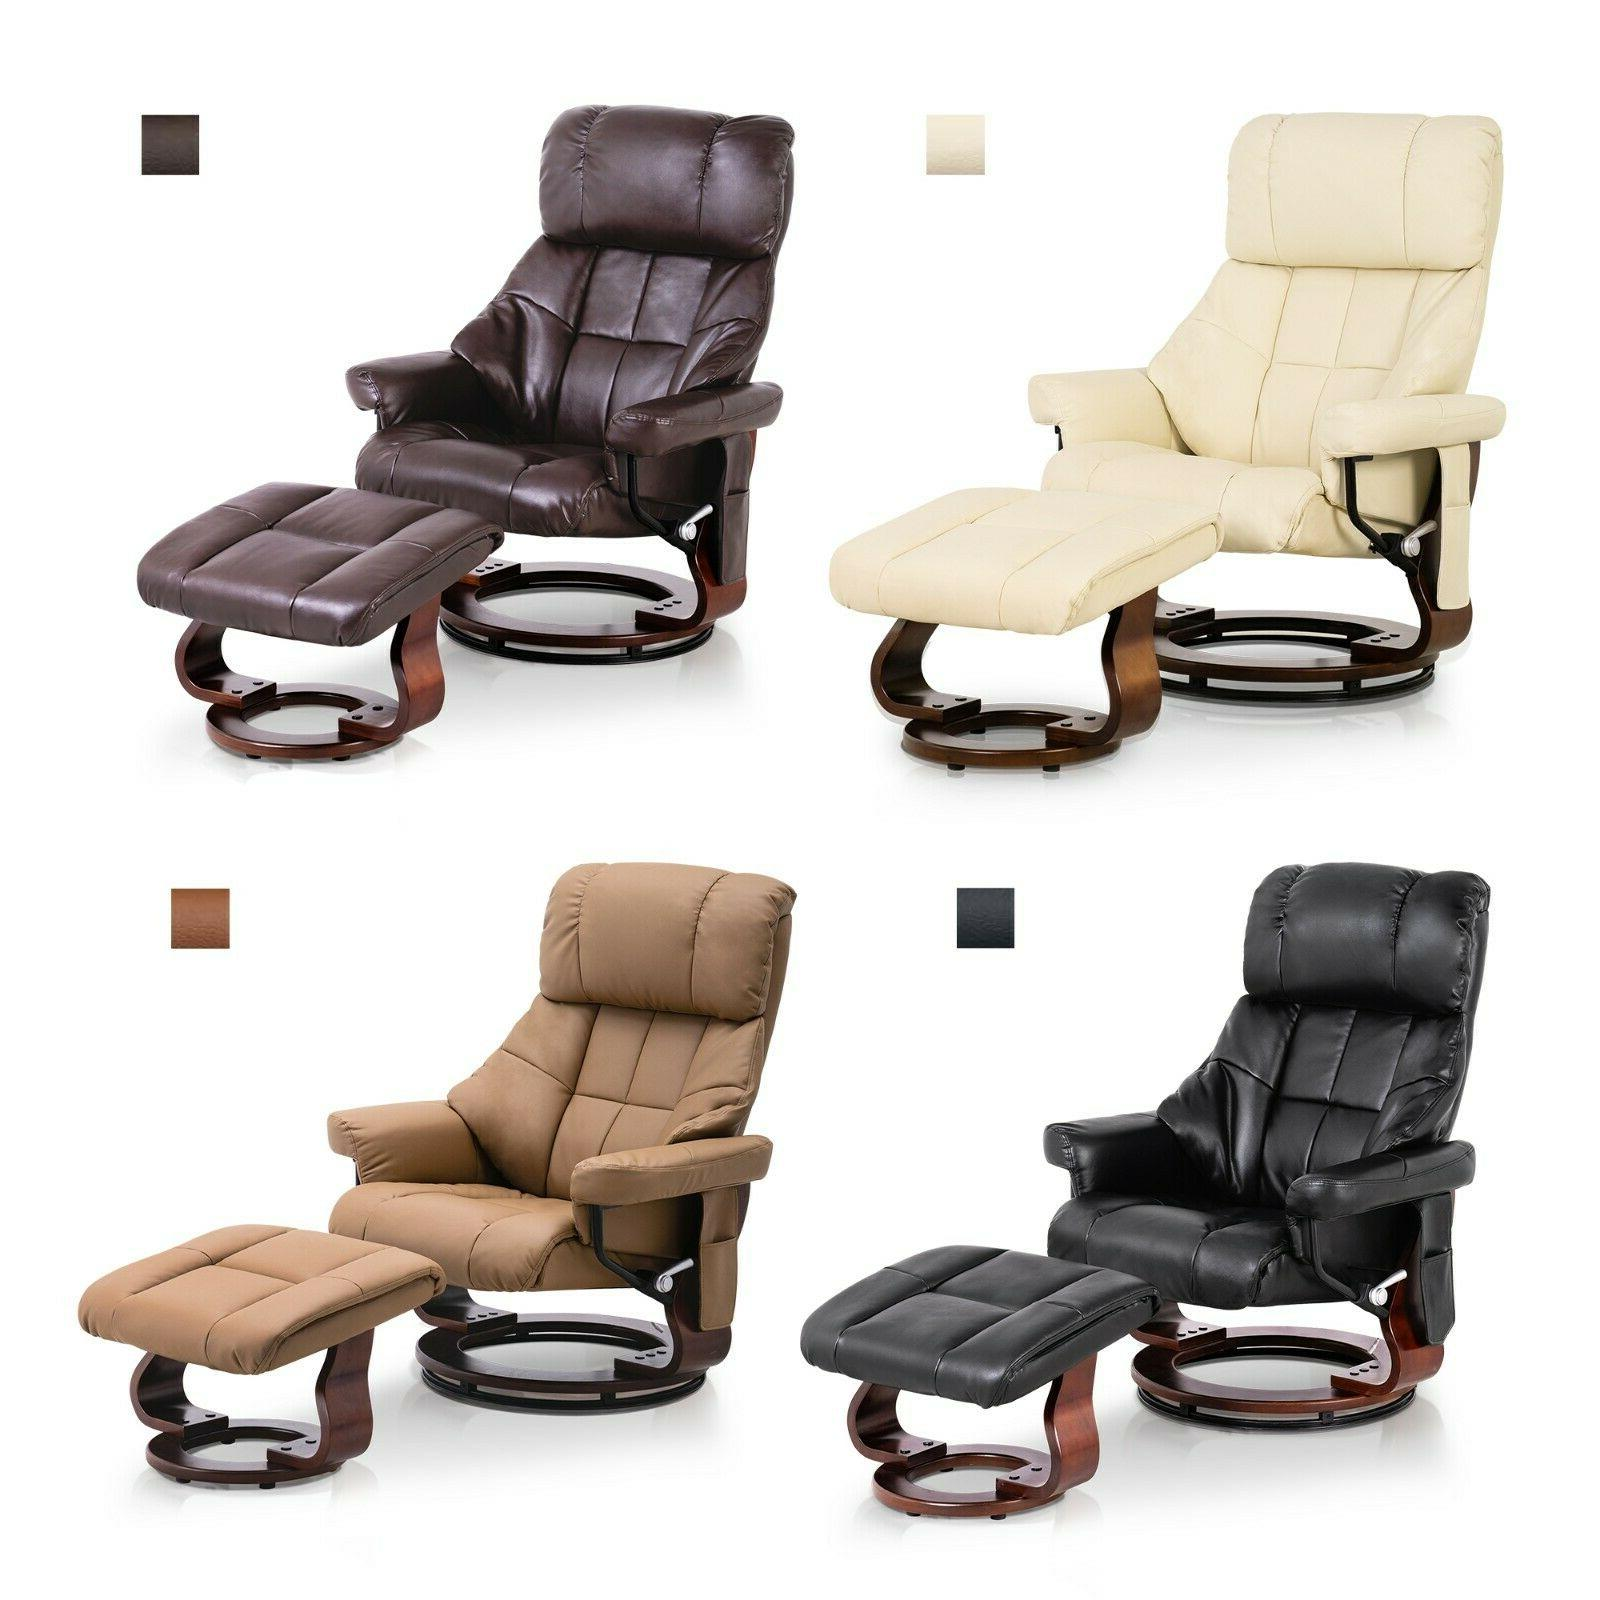 recliner with ottoman with vibration massage wood